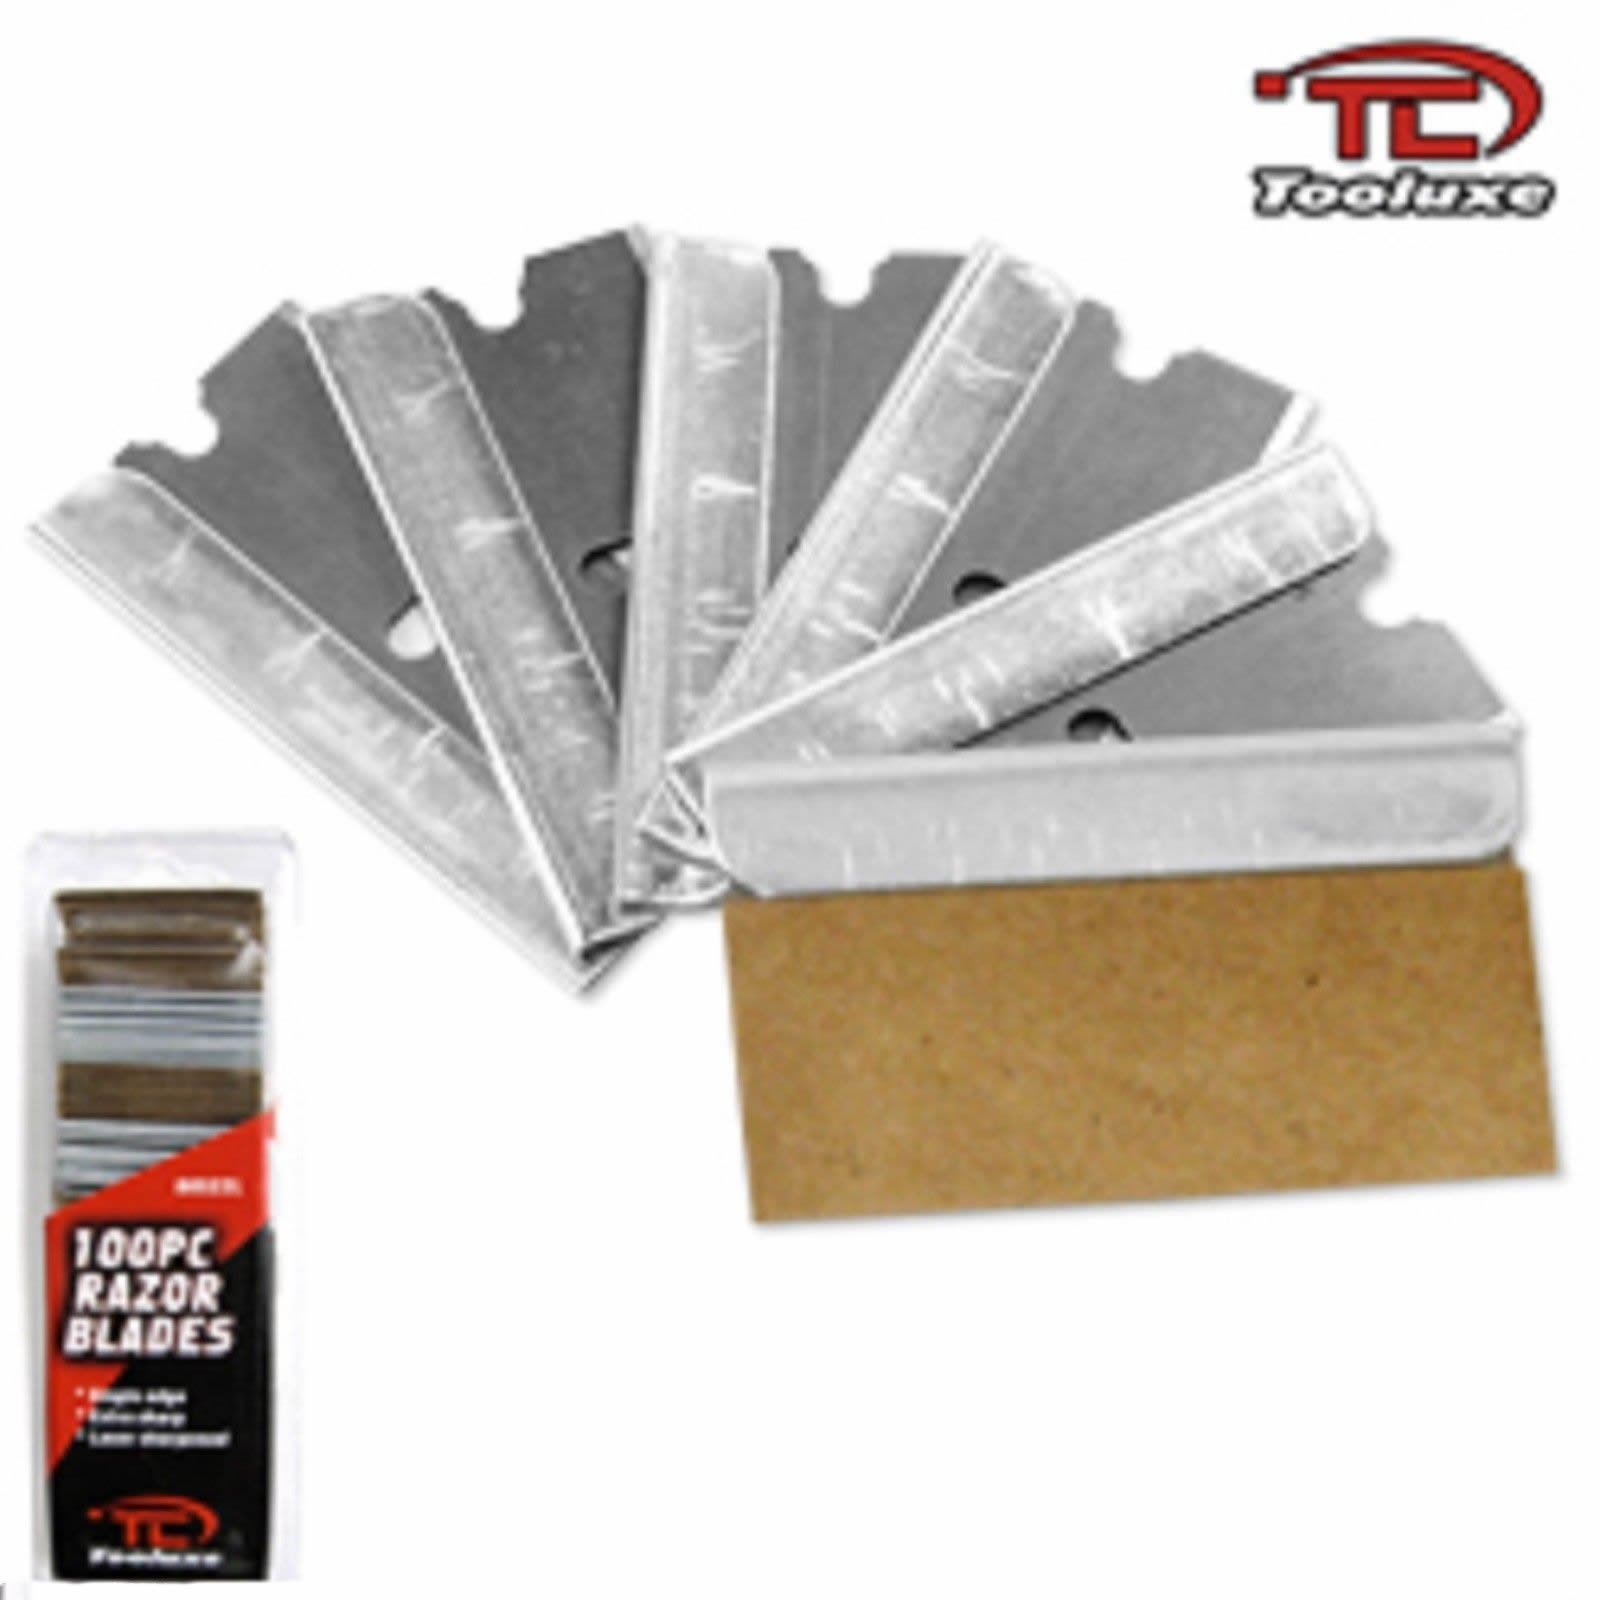 1;000 Piece Razor Blades 1000 Single Edge Cutters 10 New Packs of 100 Wholesale by Generic (Image #1)